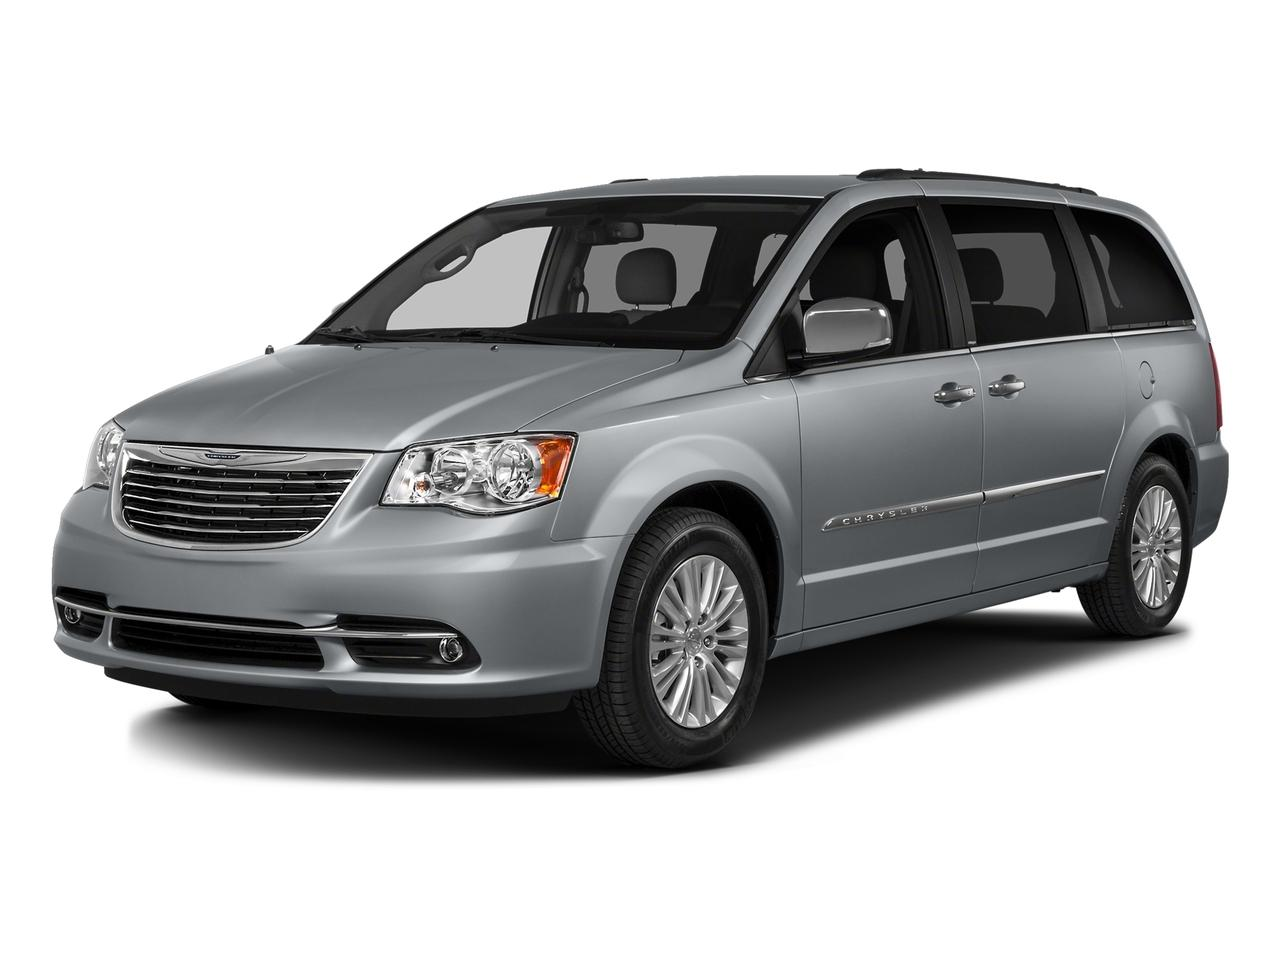 2016 Chrysler Town & Country Vehicle Photo in MEDINA, OH 44256-9631